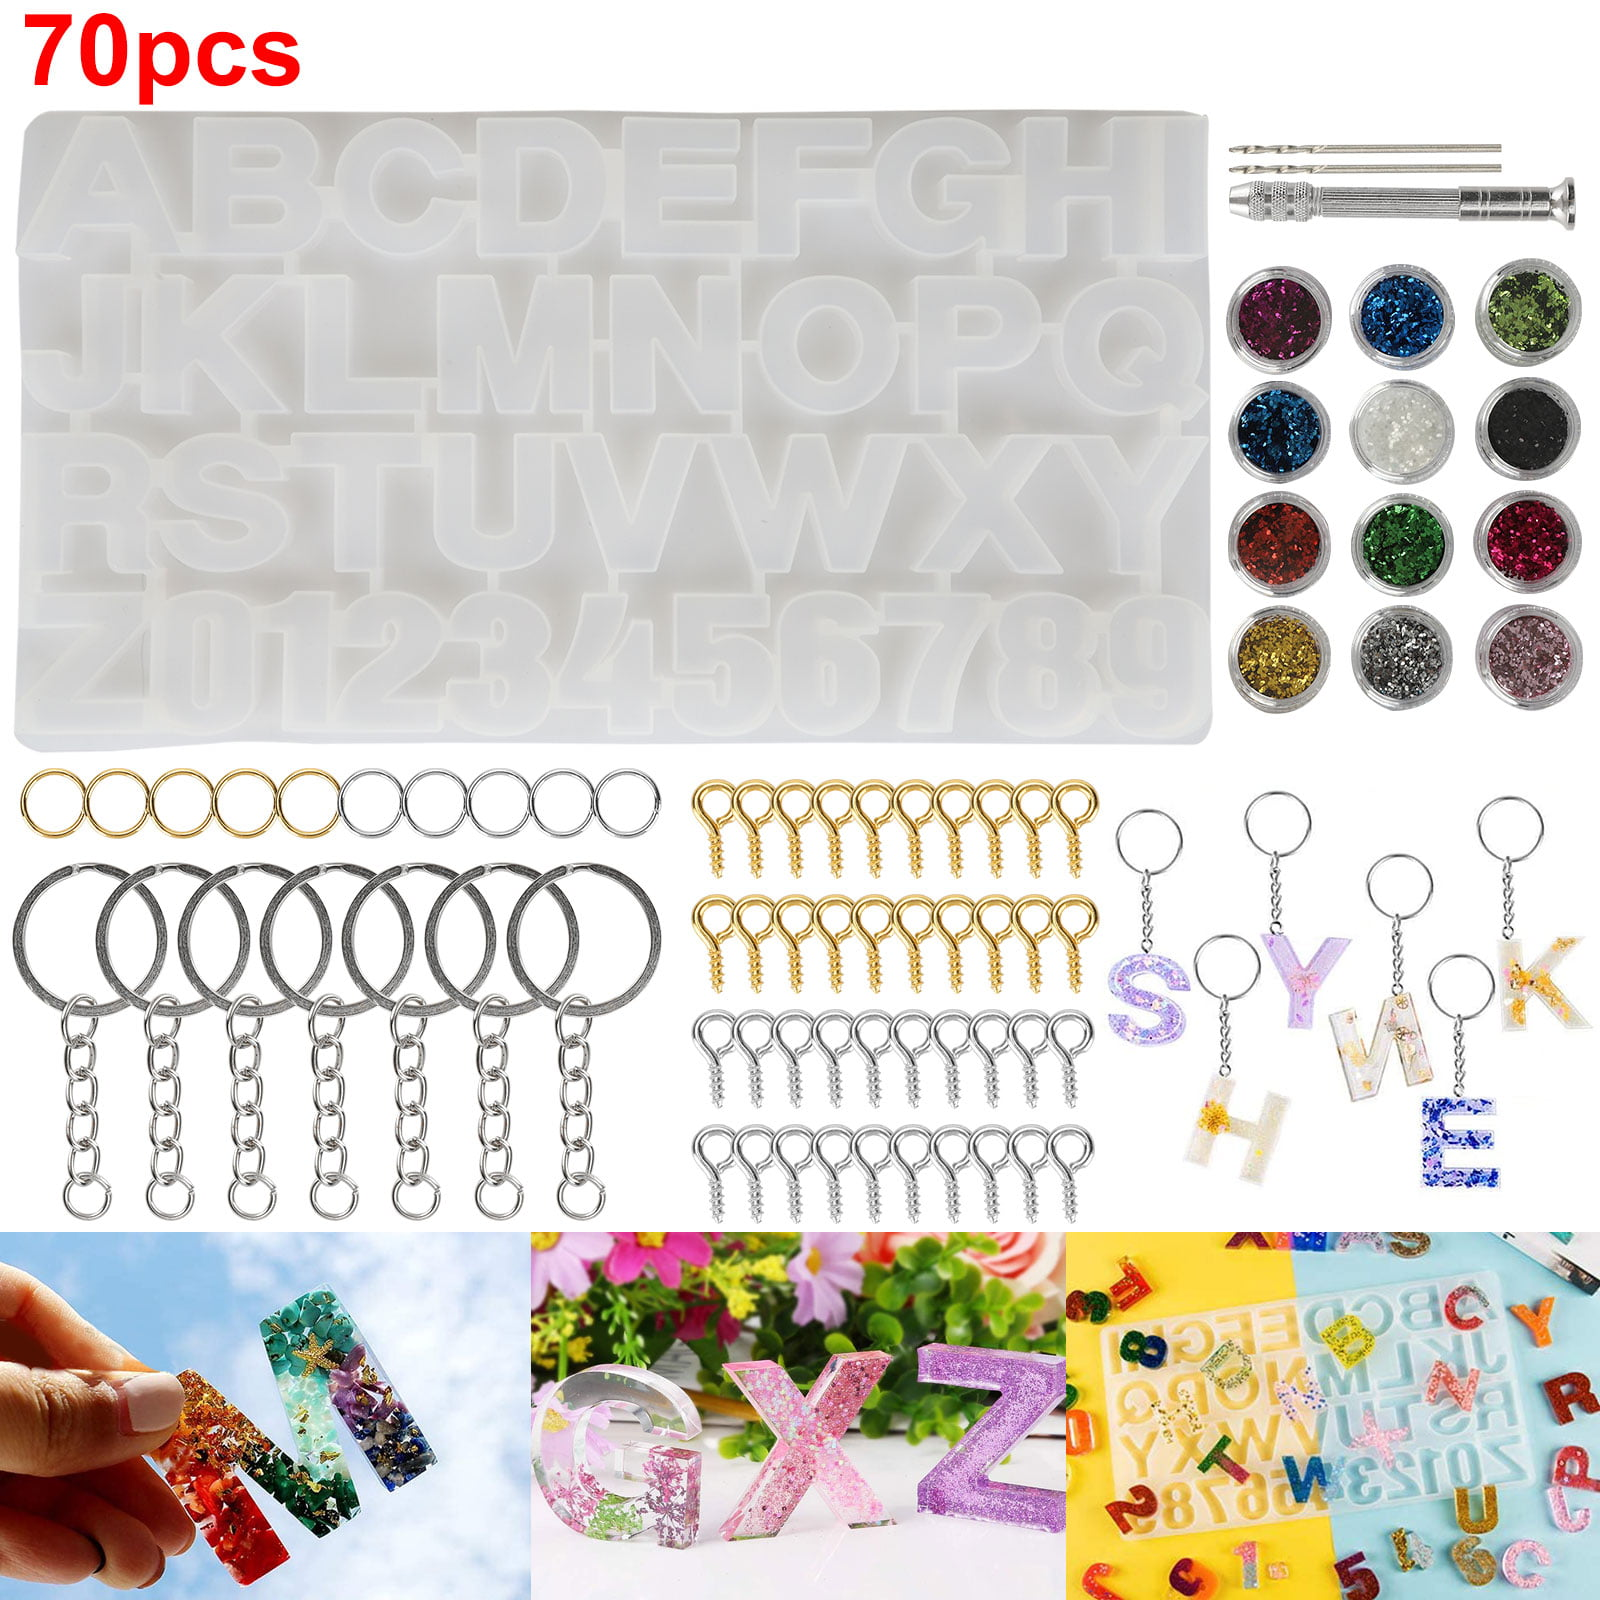 Tsv 70pcs Resin Casting Alphabet Mold Letter Number Silicone Molds Epoxy Molds And Tools Set For Diy Jewelry Keychain Making Backwards Letter Number Craft Casting Molds Set Kit Unique Creative Gift